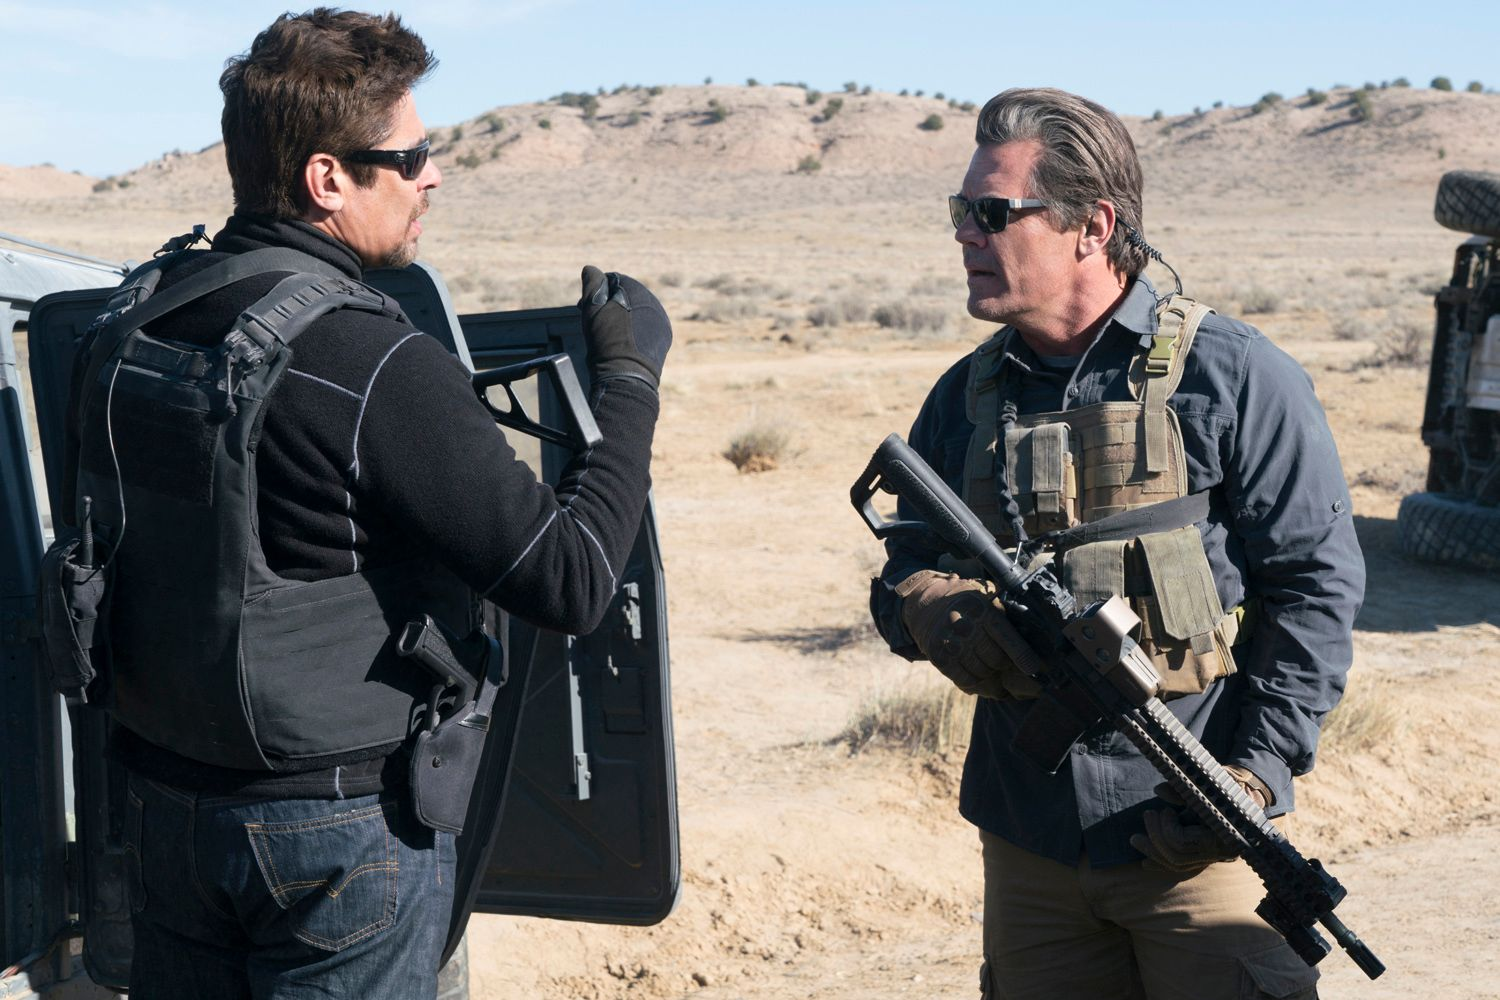 New Trailer Released For Sicario: Day of the Soldado